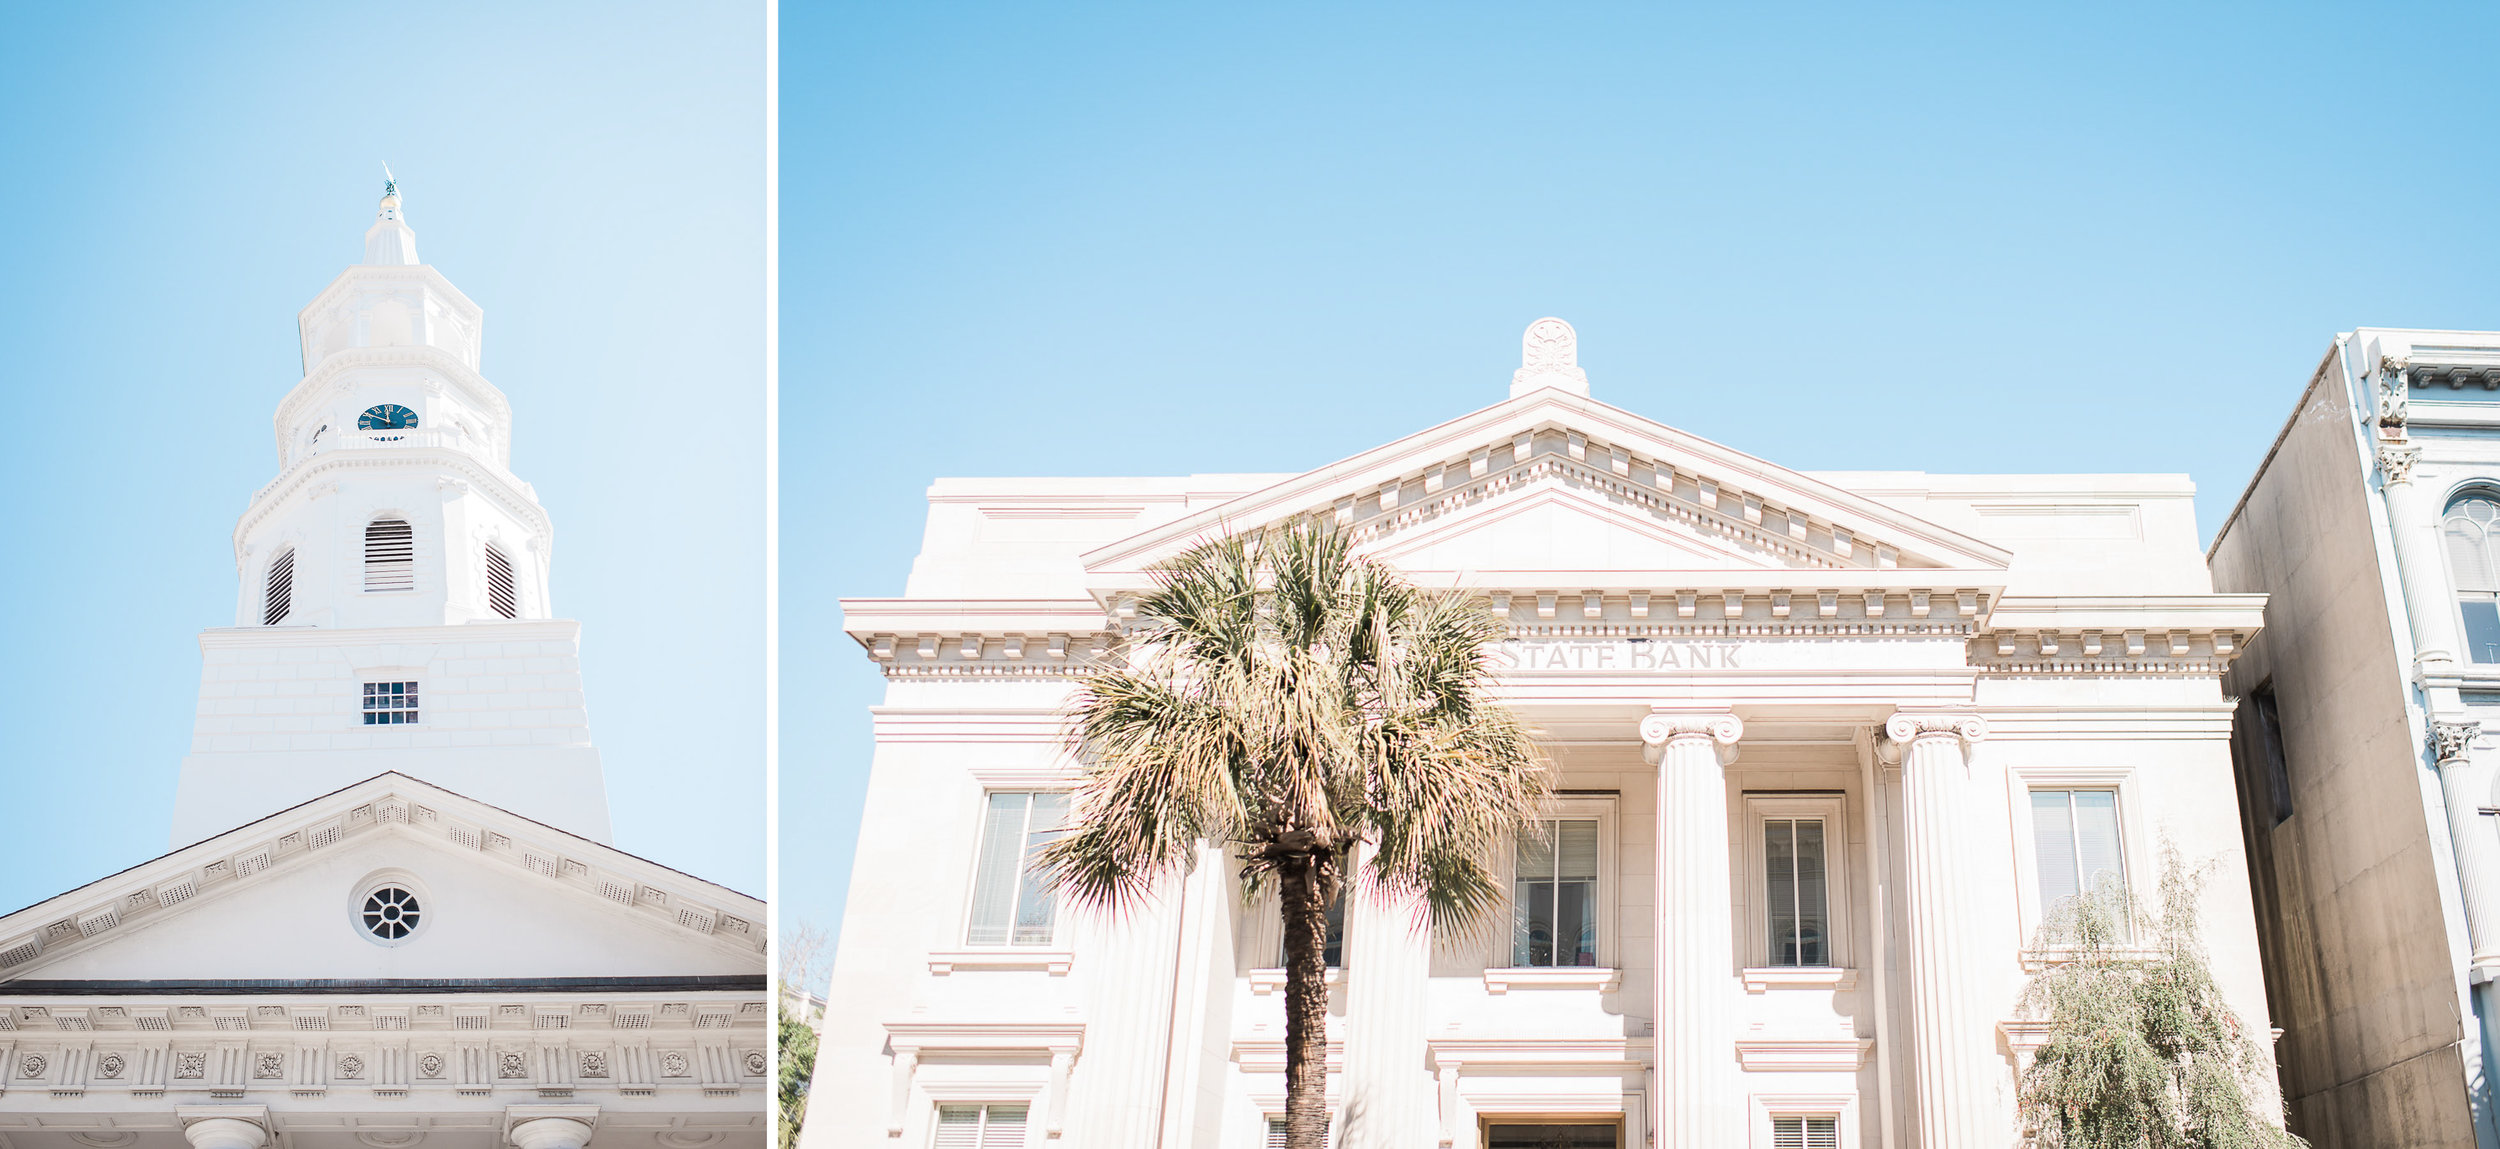 KateTaramykinStudios-Travel-Photographer-Charleston-South-Carolina-19.jpg